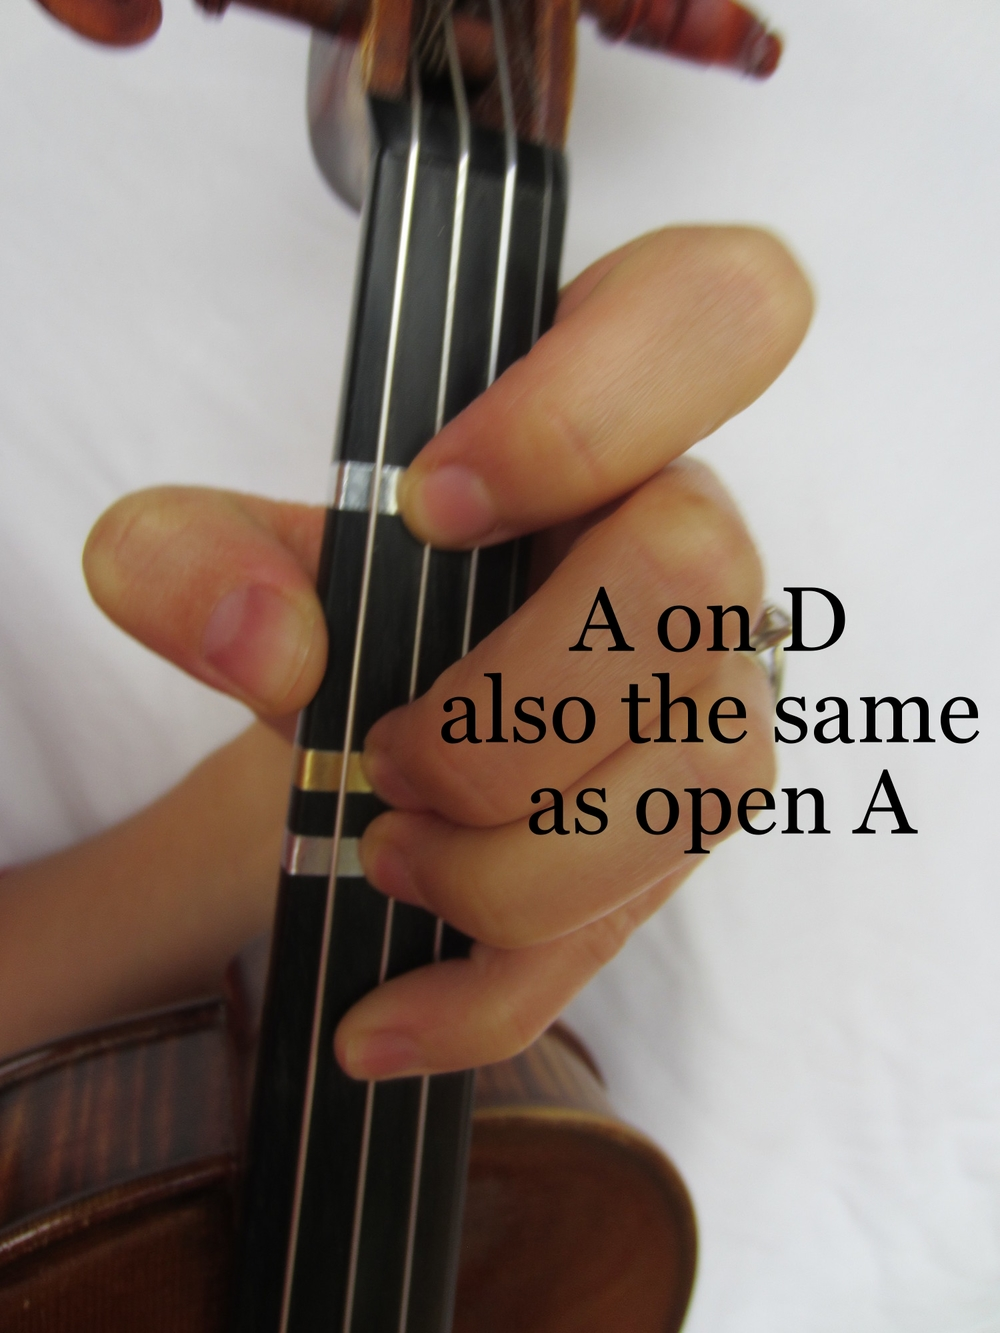 Violin Fingering A on D.JPG